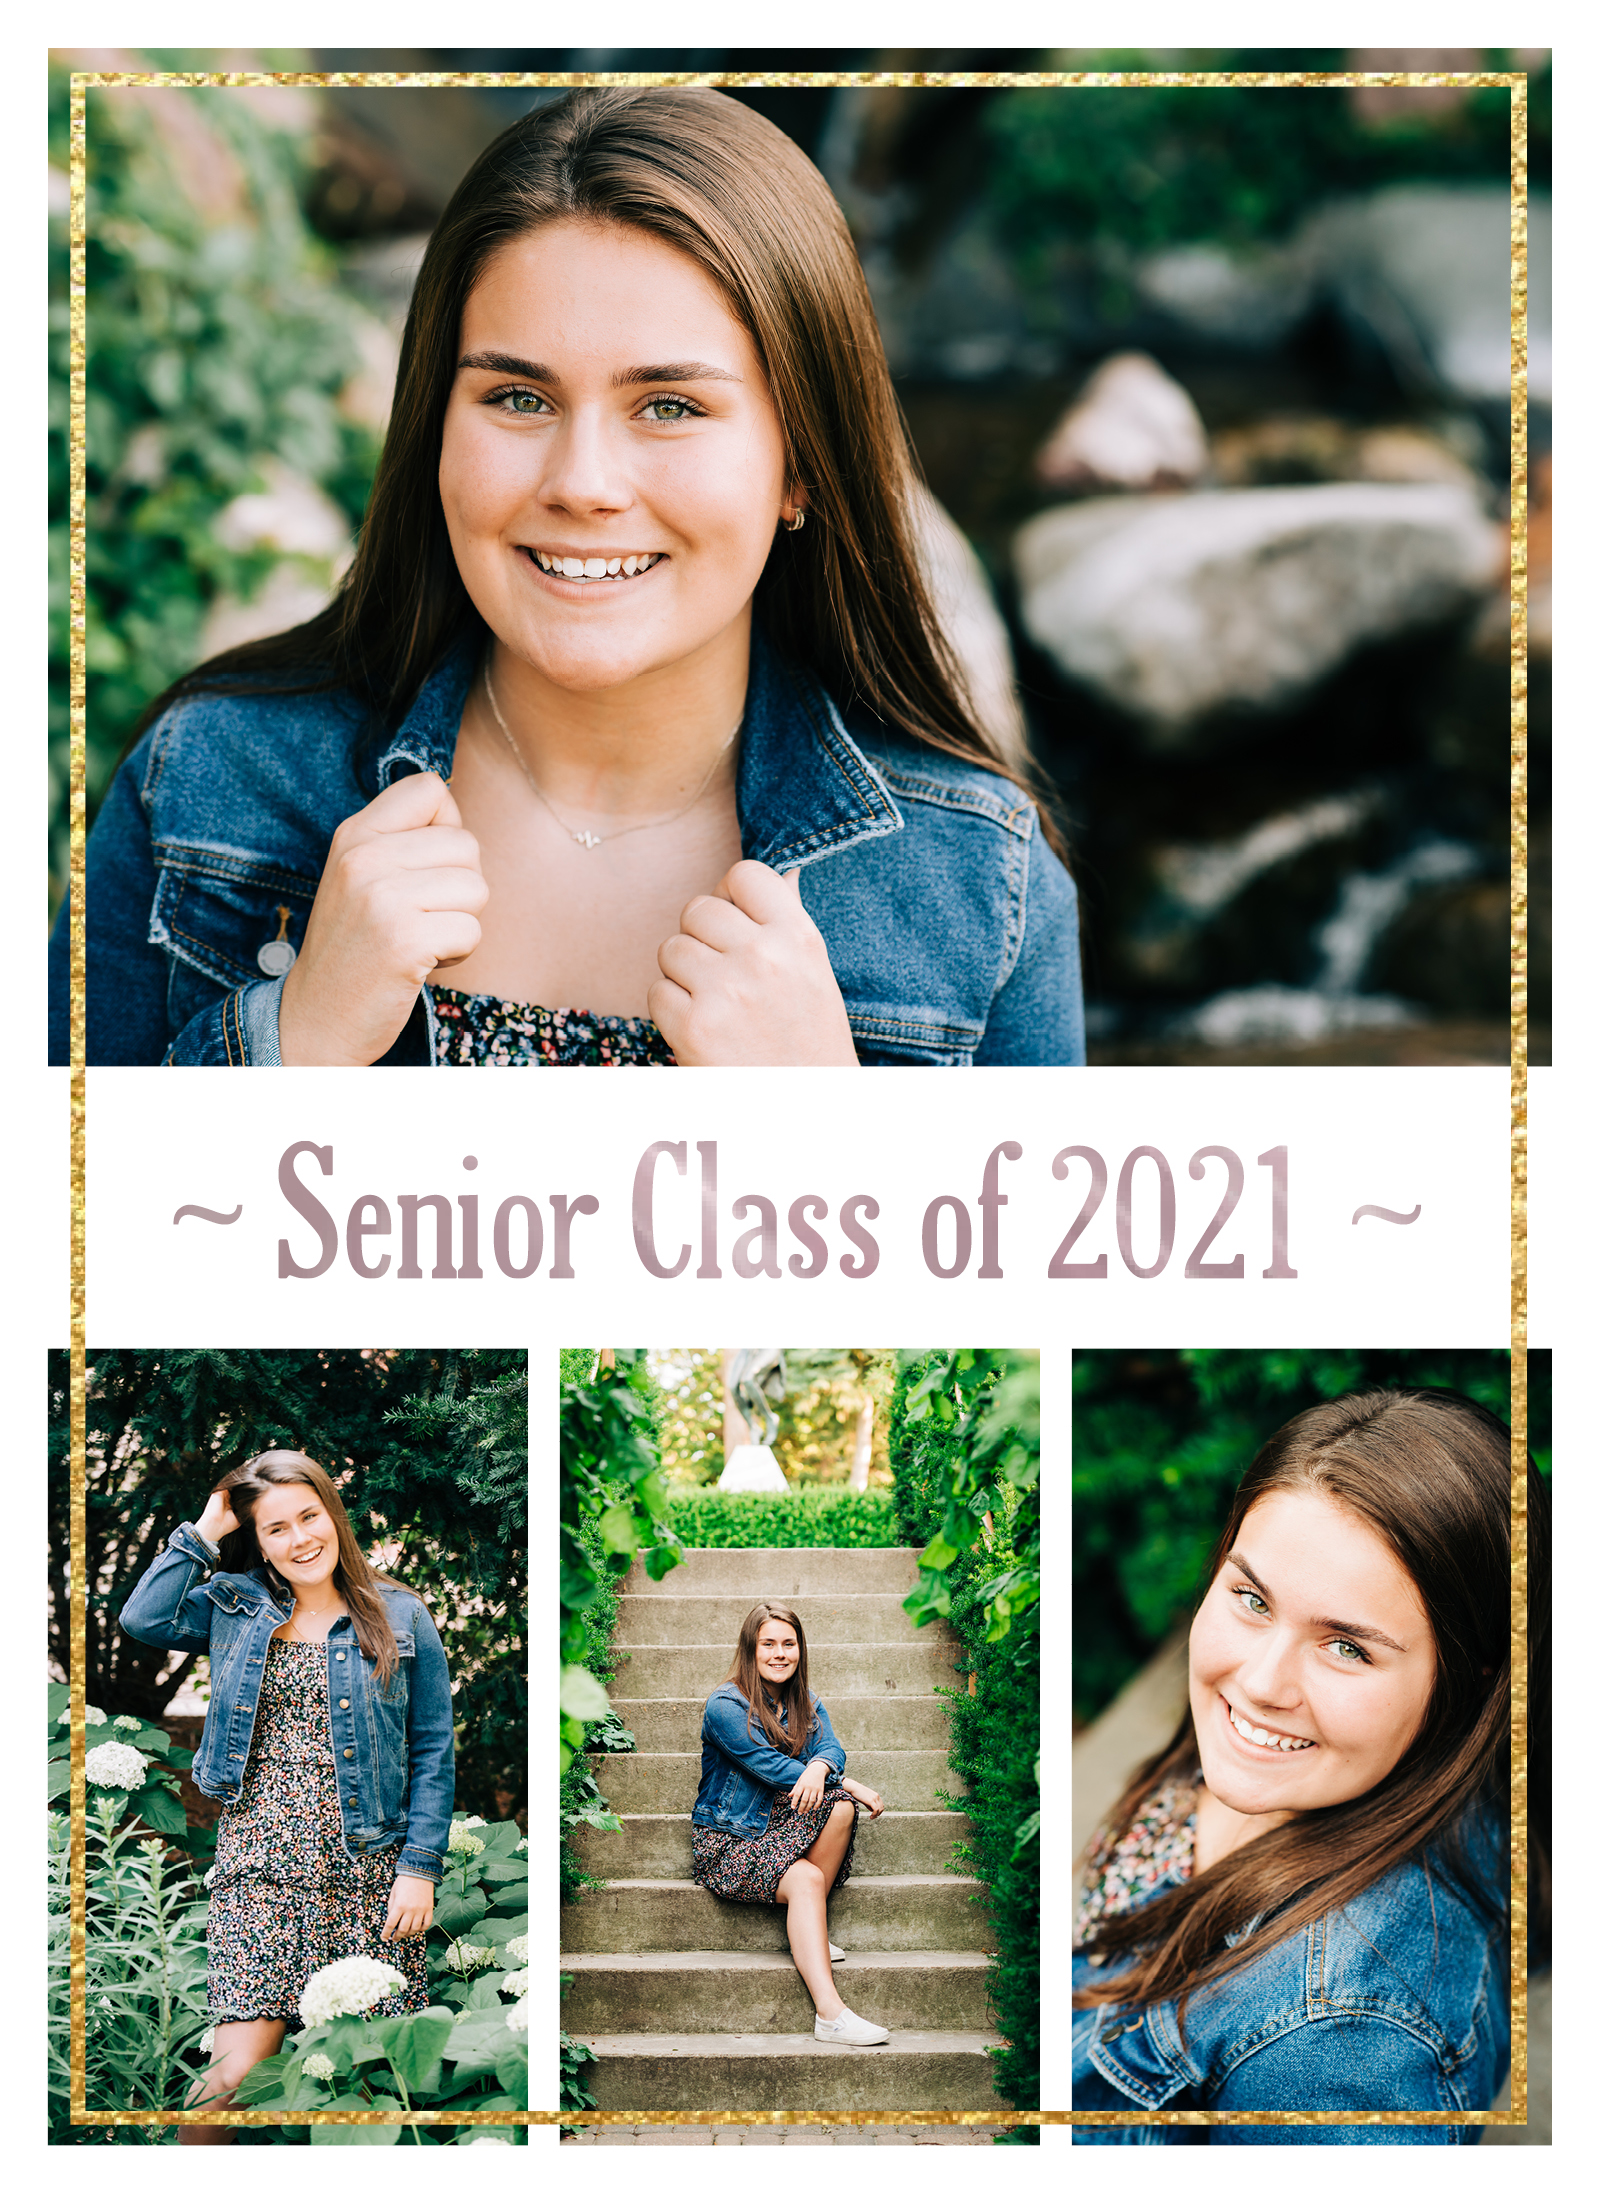 Senior Girl Picture Collage